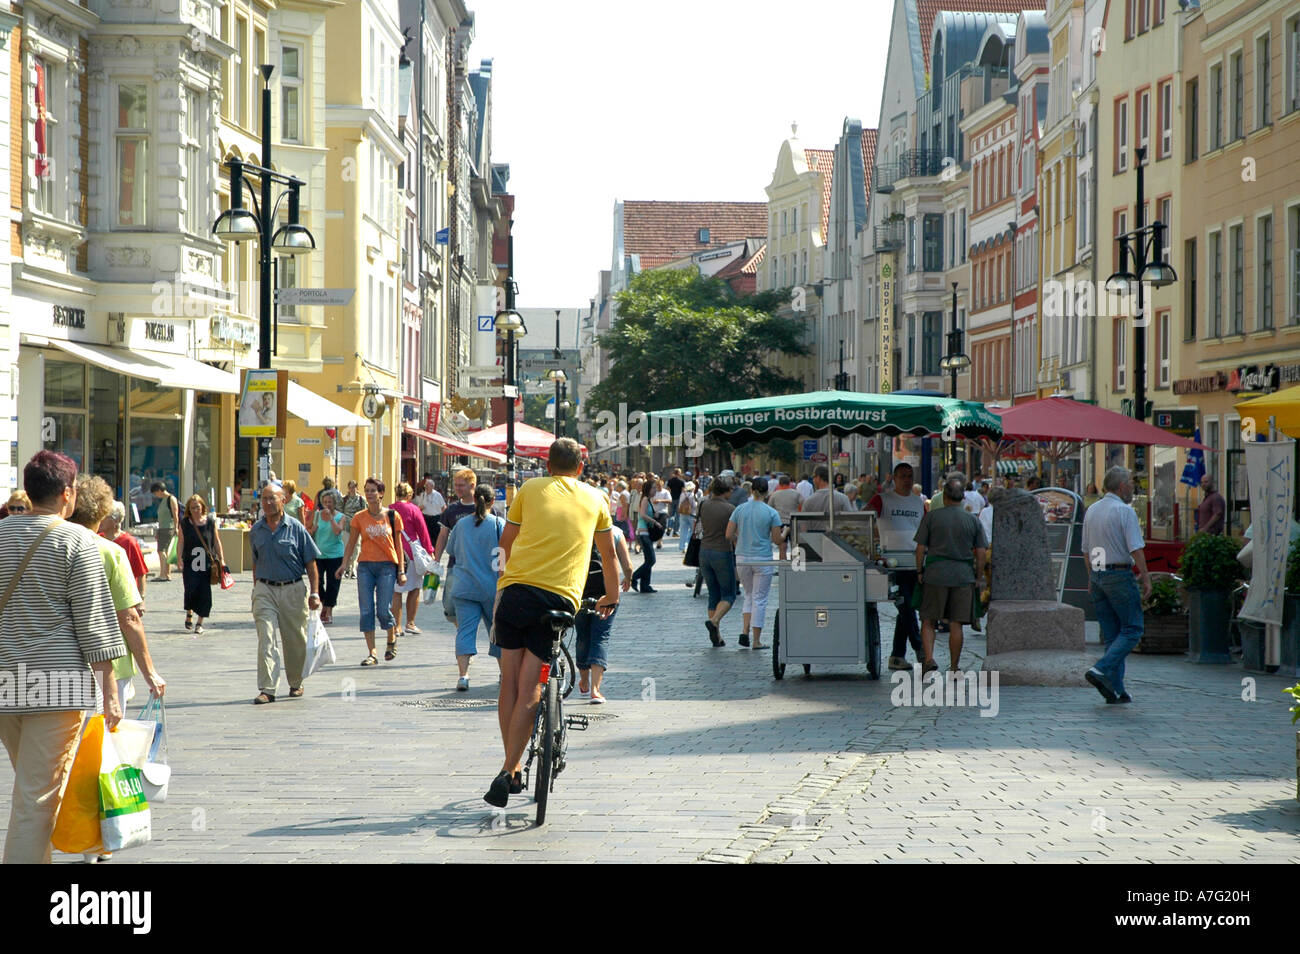 Rostock Shopping Pedestrian Shopping Street In Rostock East Germany Stock Photo